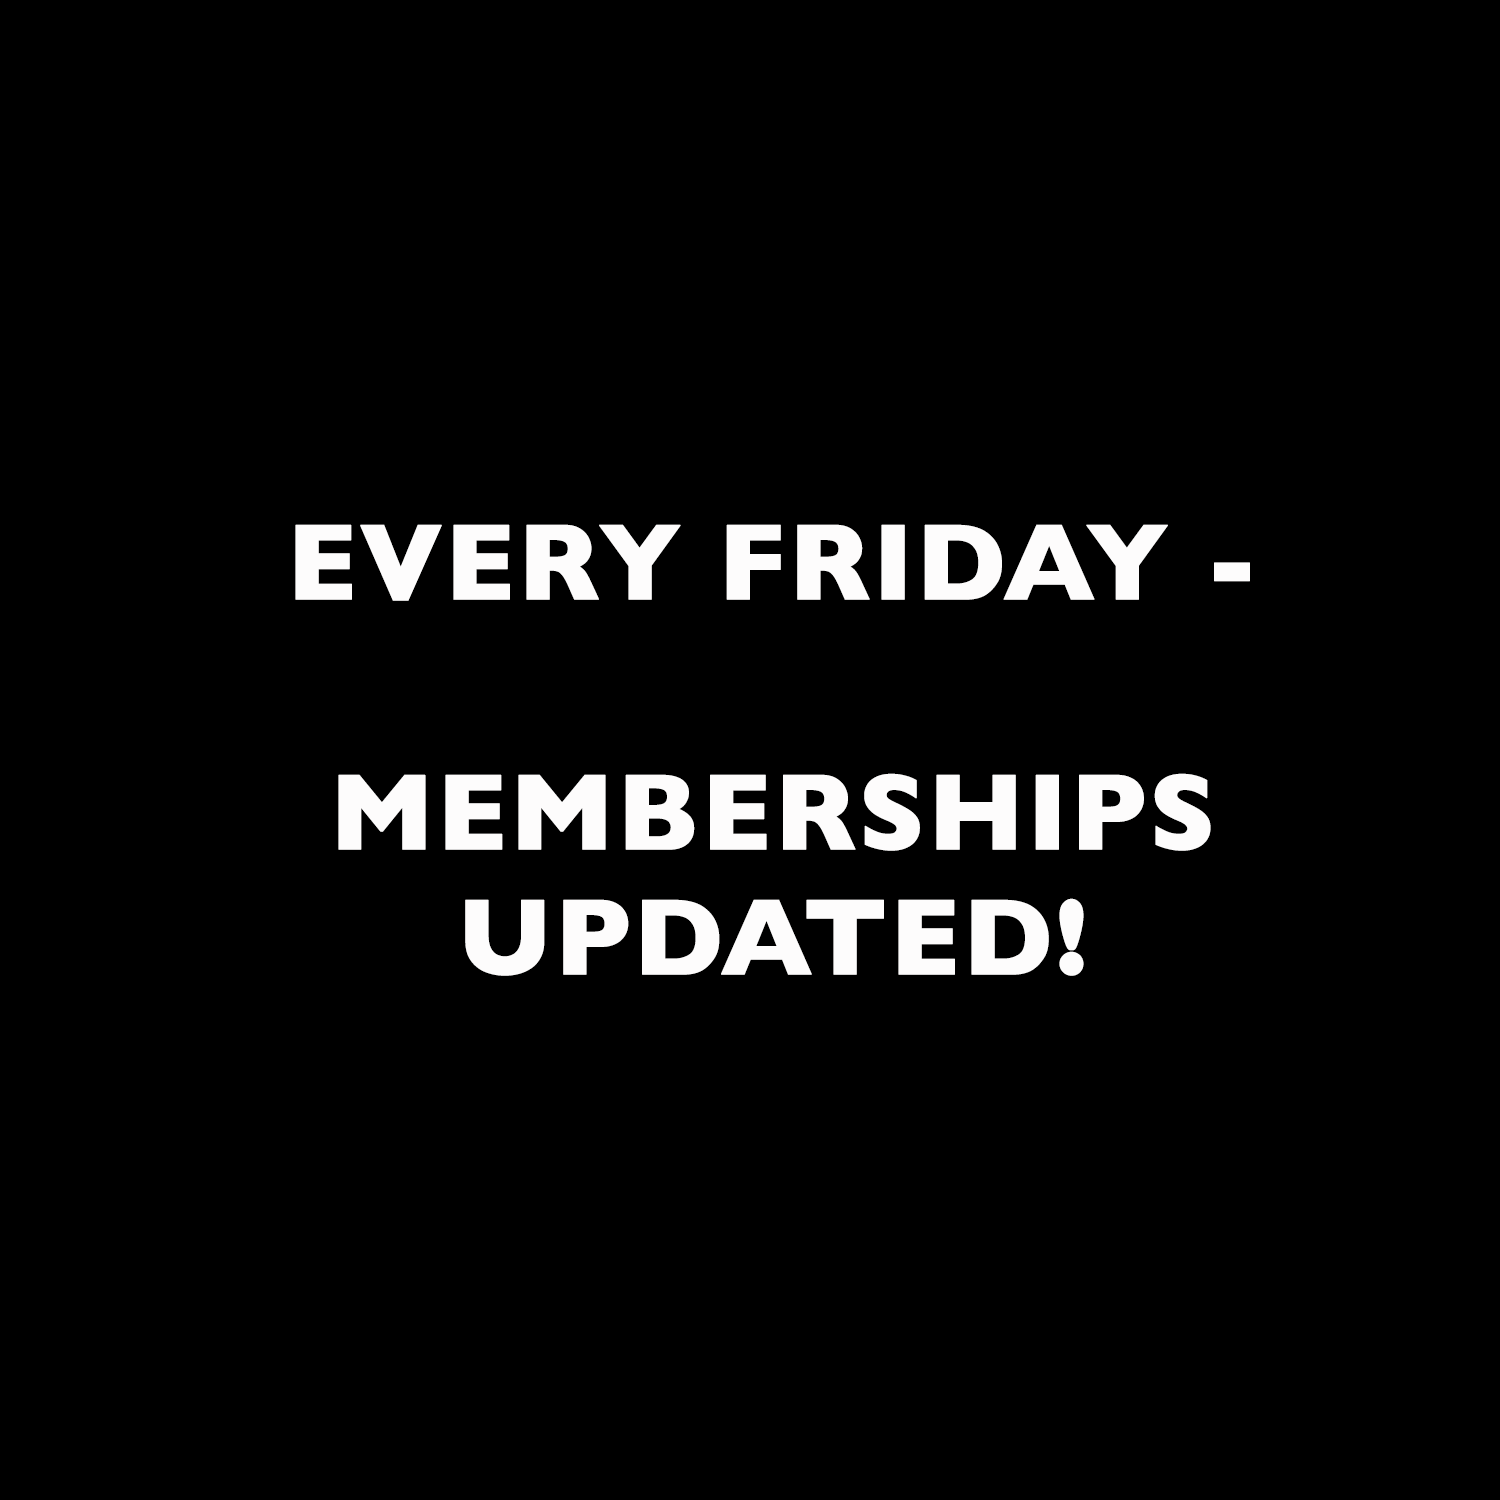 You are a Member Every Friday!